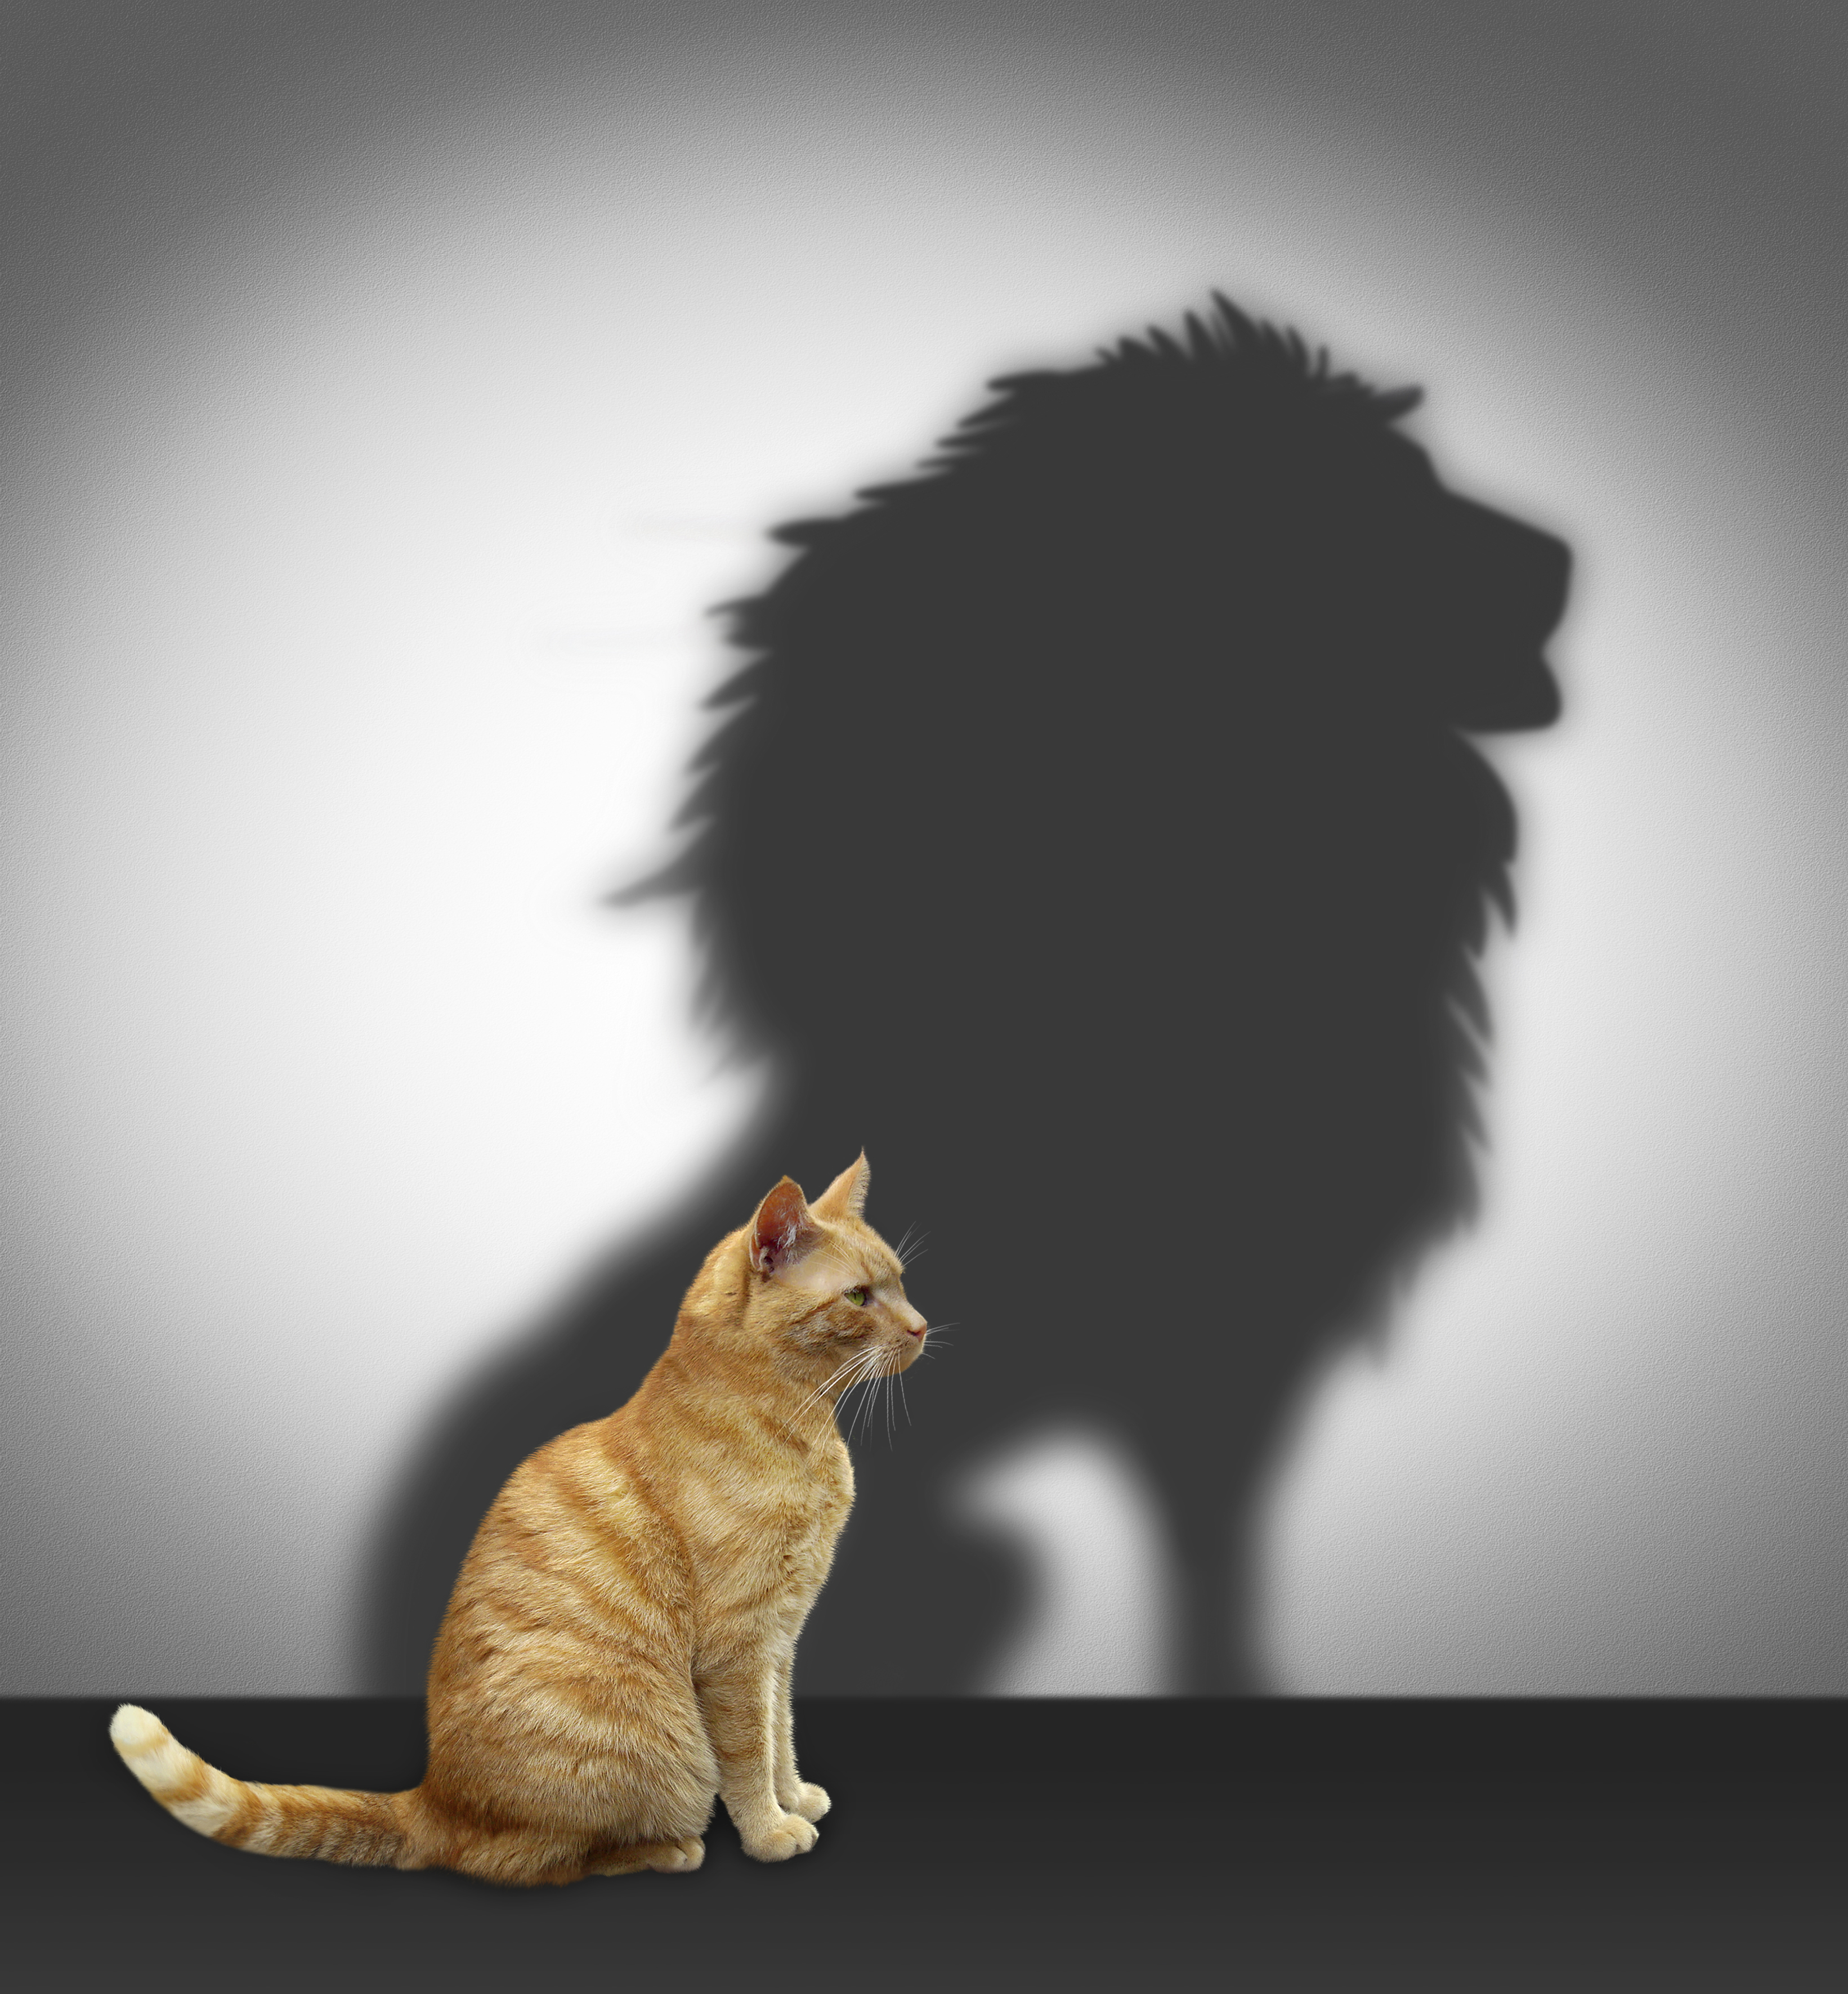 Cat stands tall and shadow forms a lion